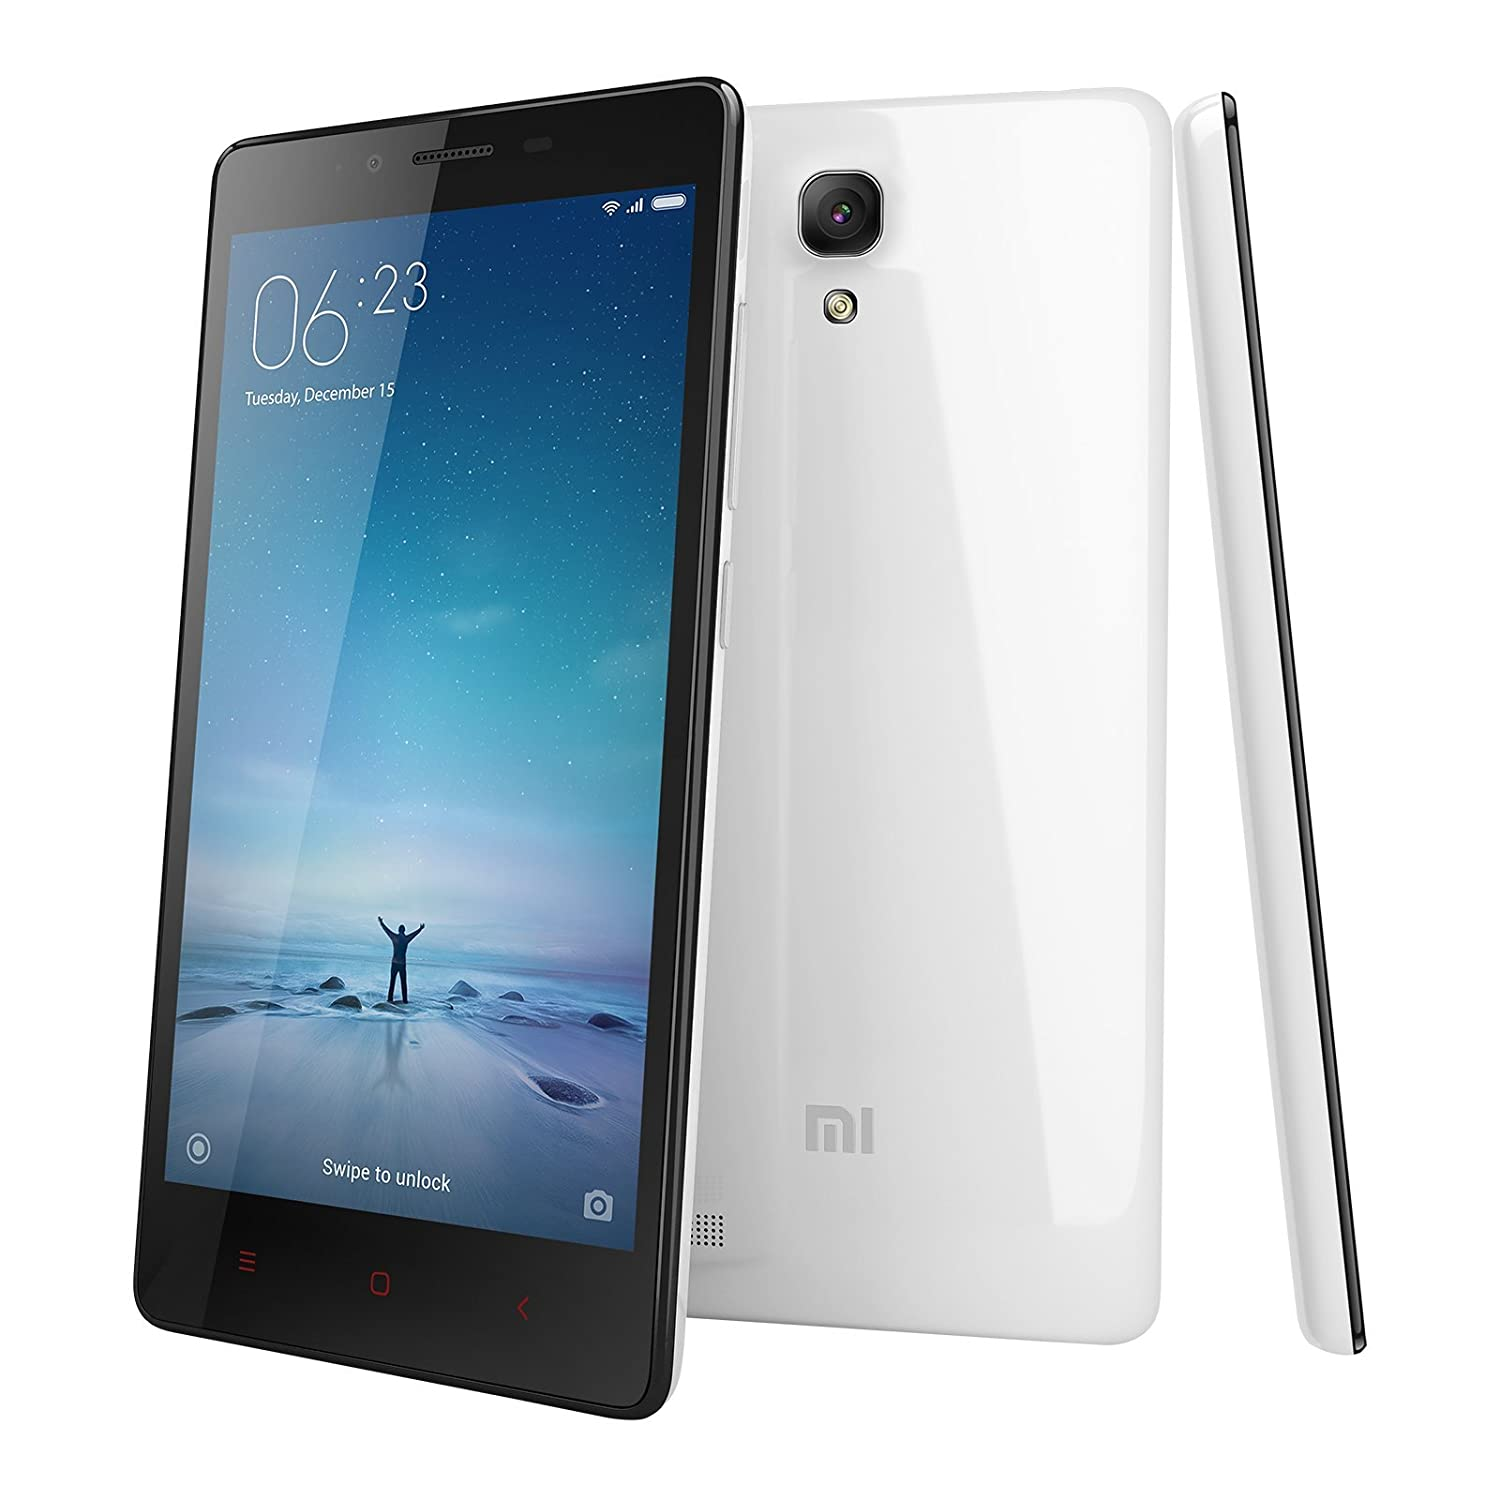 Xiaomi Redmi Note Prime Rs.7999 From Amazon.in